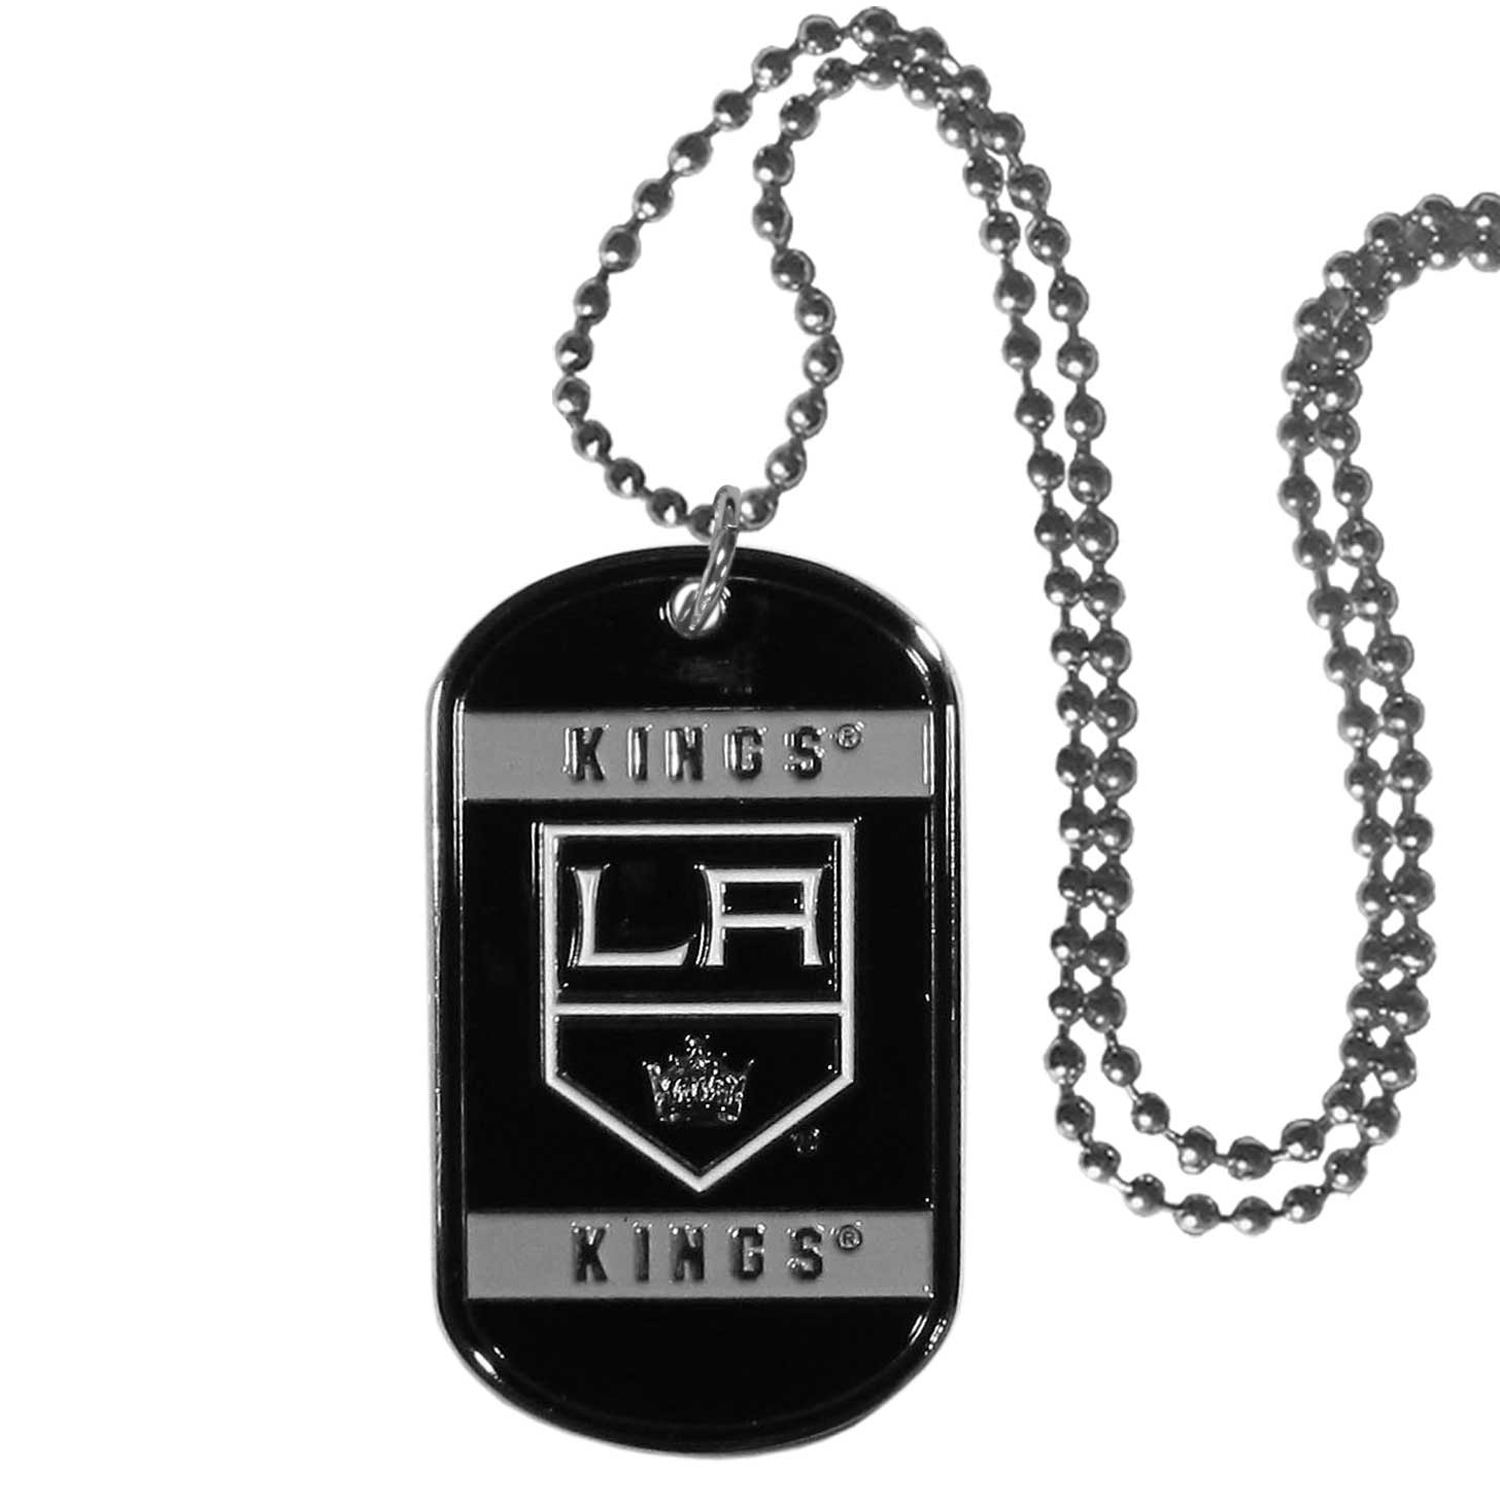 Los Angeles Kings® Tag Necklace - Expertly crafted Los Angeles Kings® tag necklaces featuring fine detailing and a hand enameled finish with chrome accents. 26 inch chain.